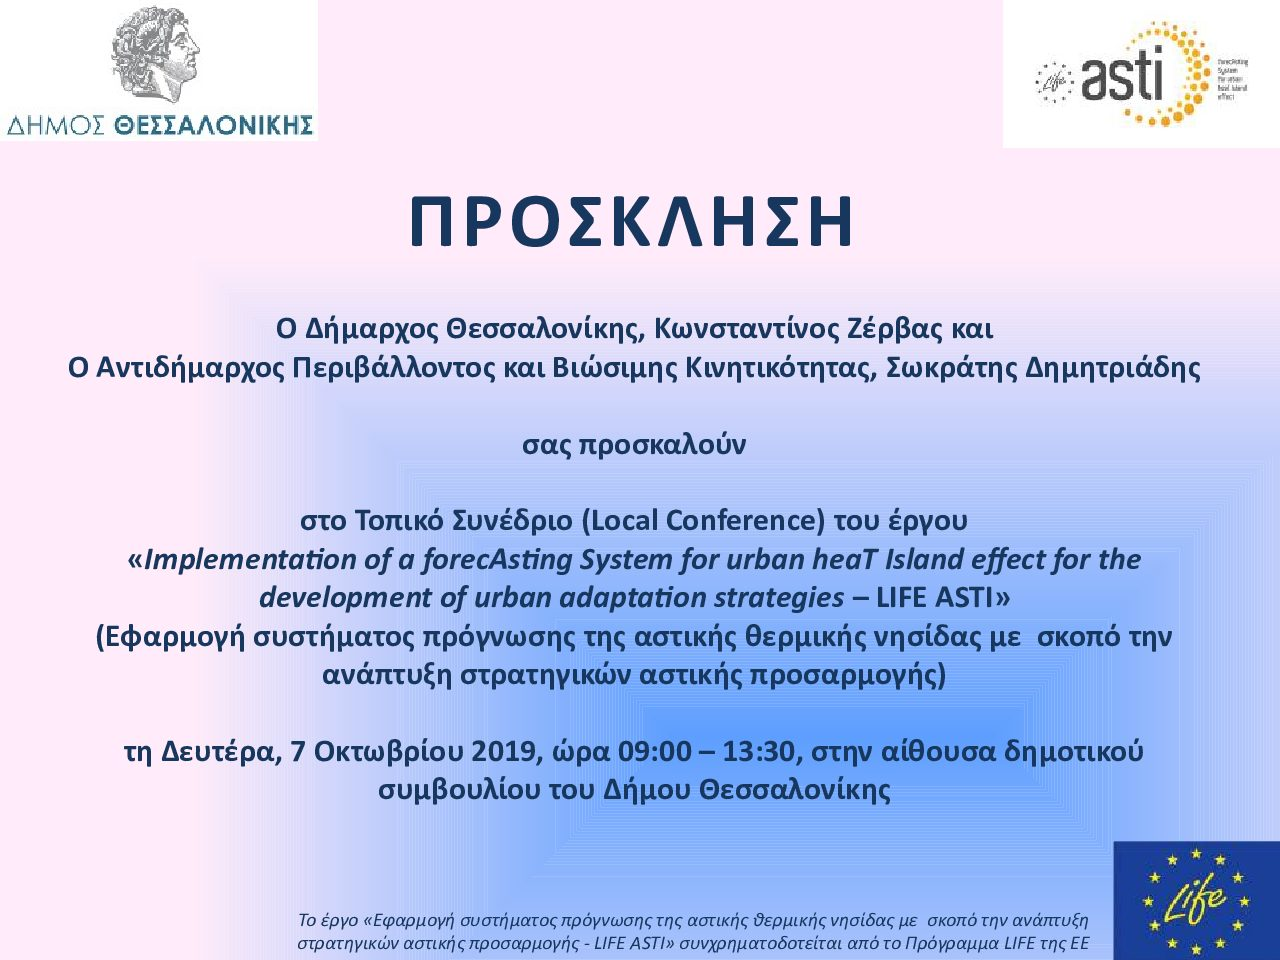 Upcoming Local Conference & Working Table, 7th October, Thessaloniki